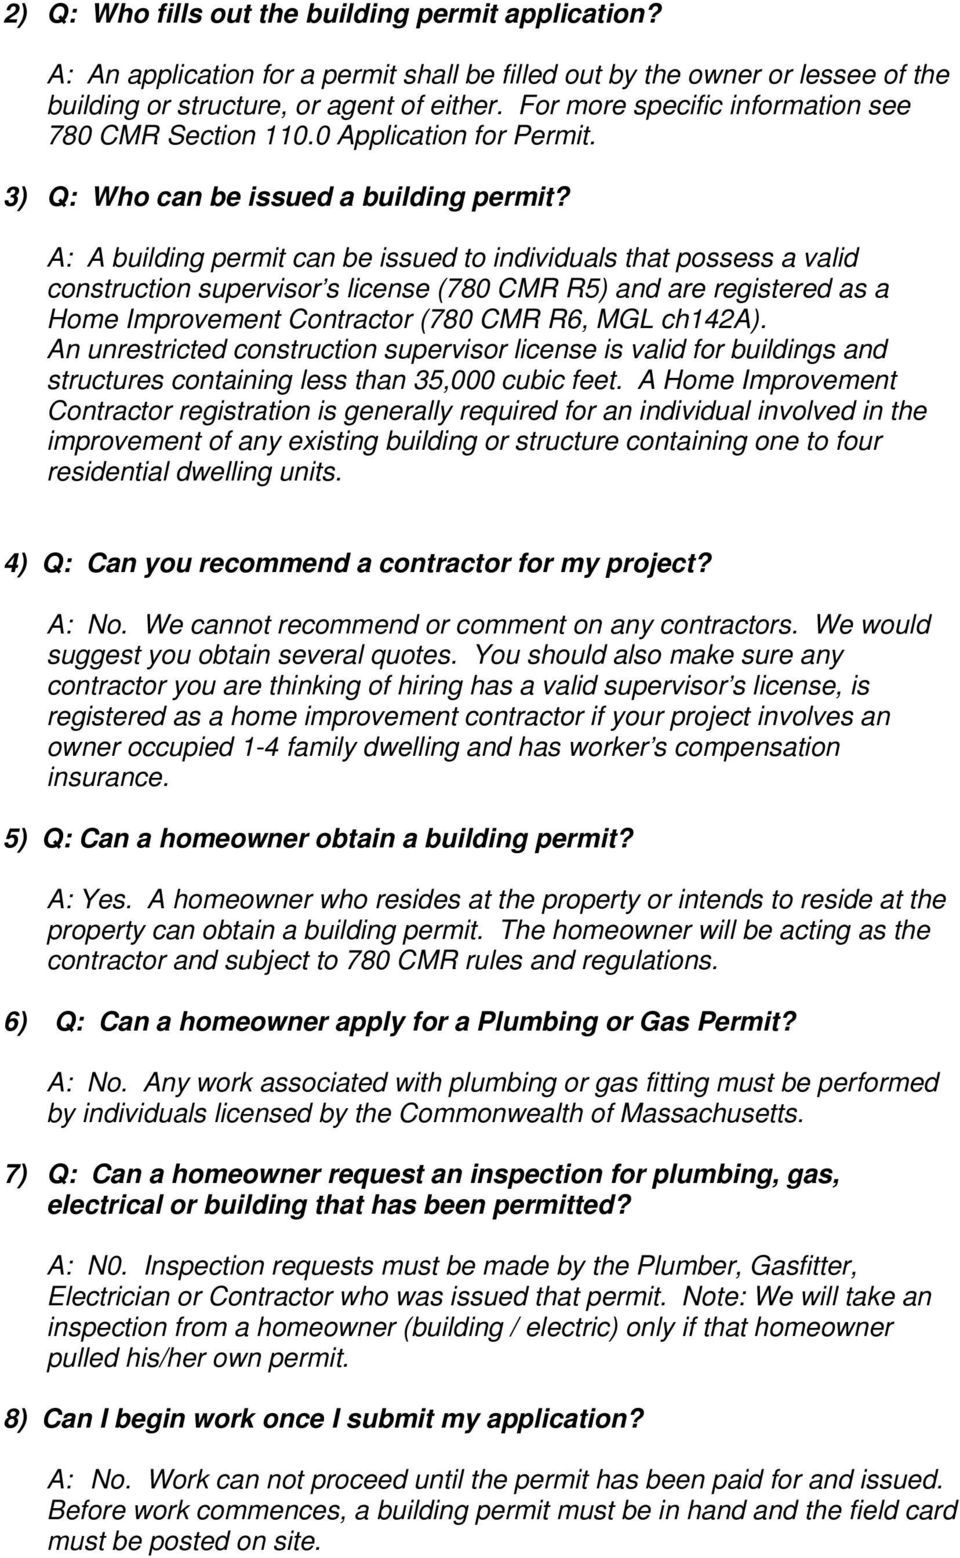 A: A building permit can be issued to individuals that possess a valid construction supervisor s license (780 CMR R5) and are registered as a Home Improvement Contractor (780 CMR R6, MGL ch142a).